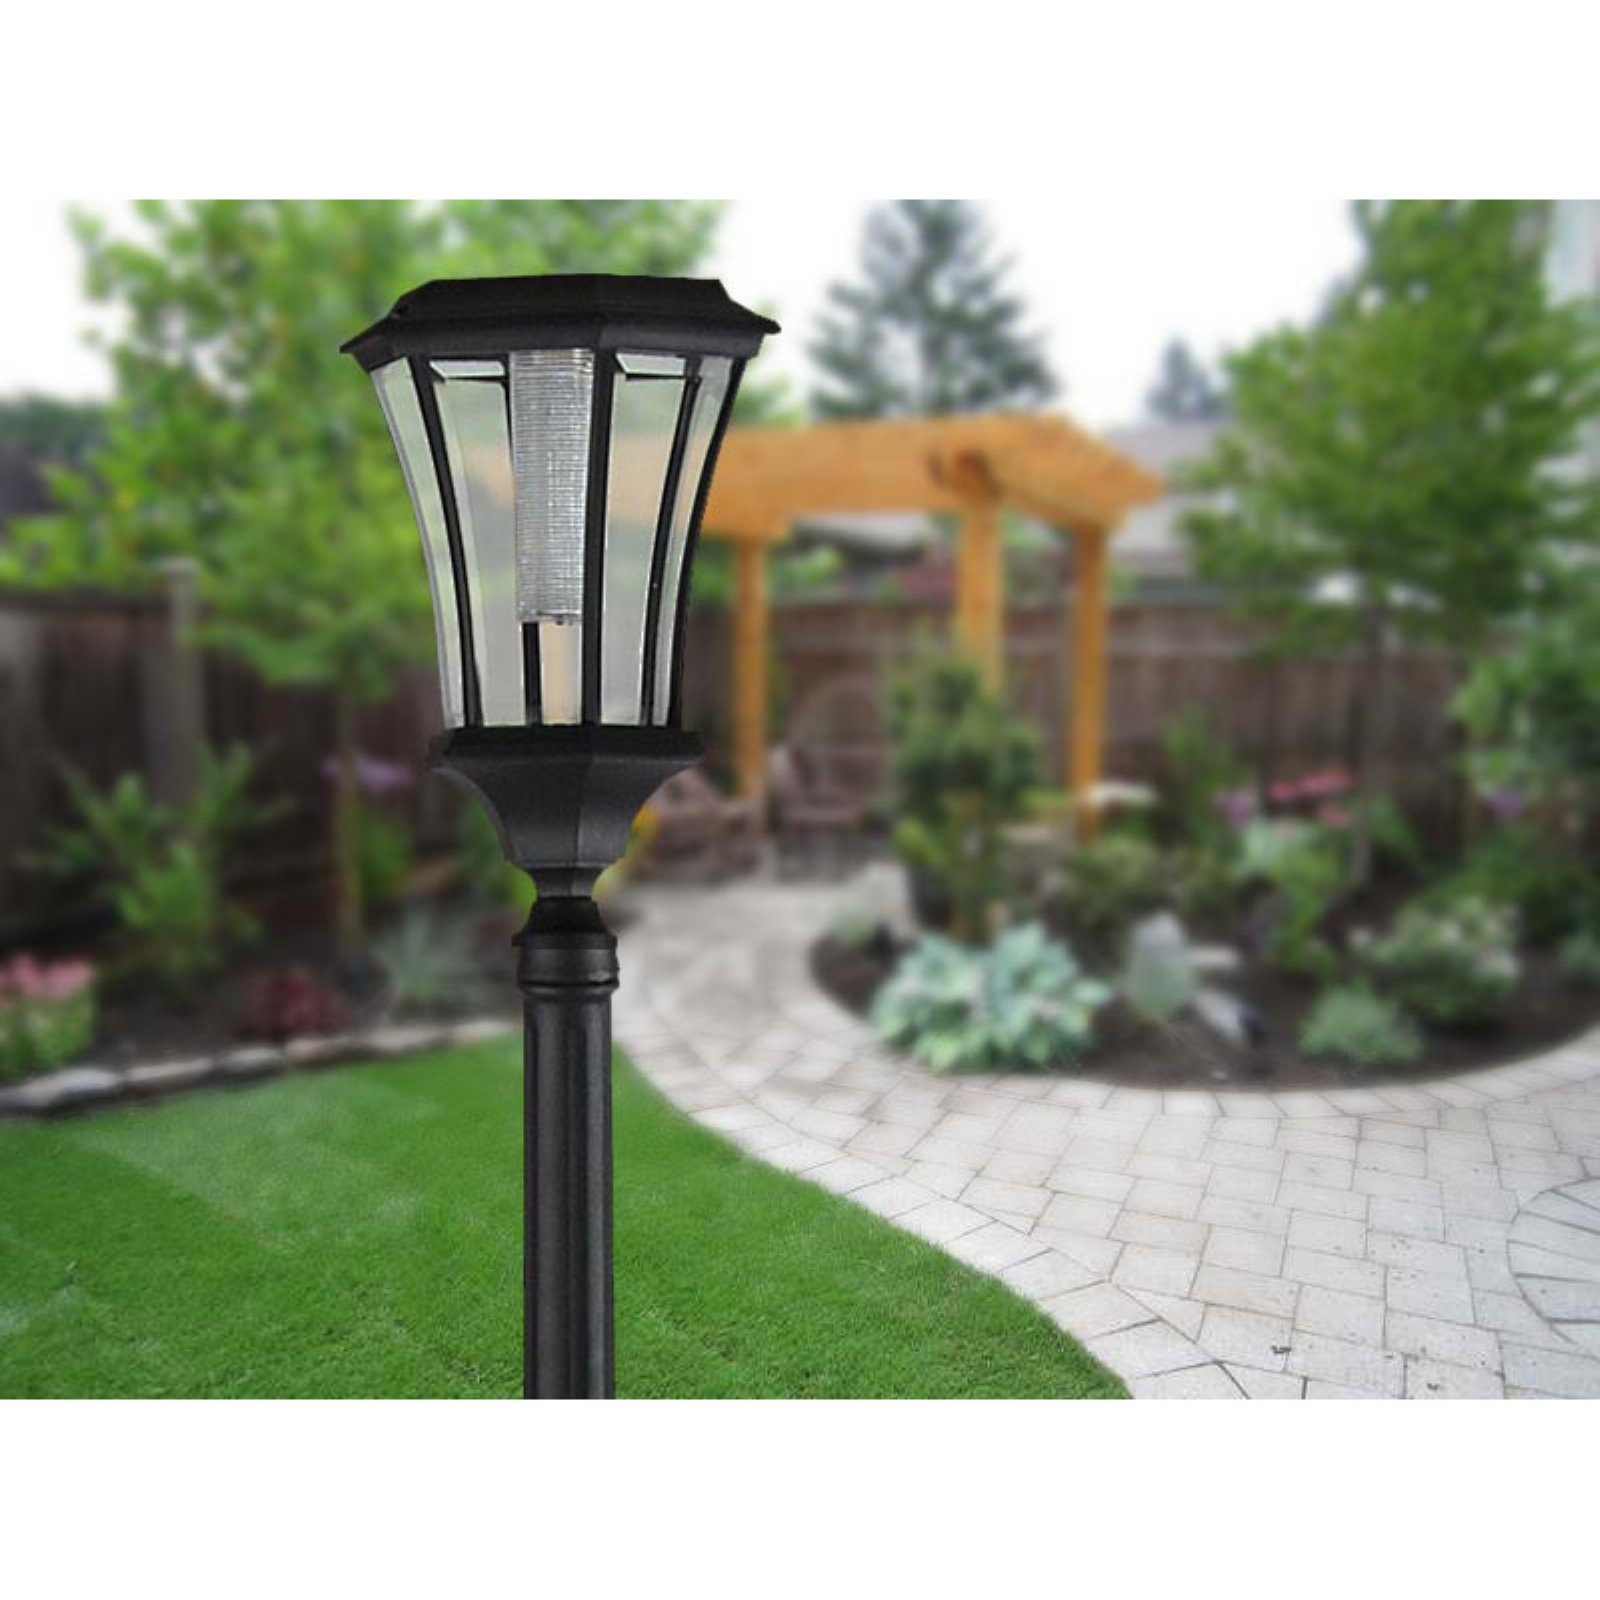 Solar Lamp Post Sun Ray Abigail Solar Lamp Post And Planter